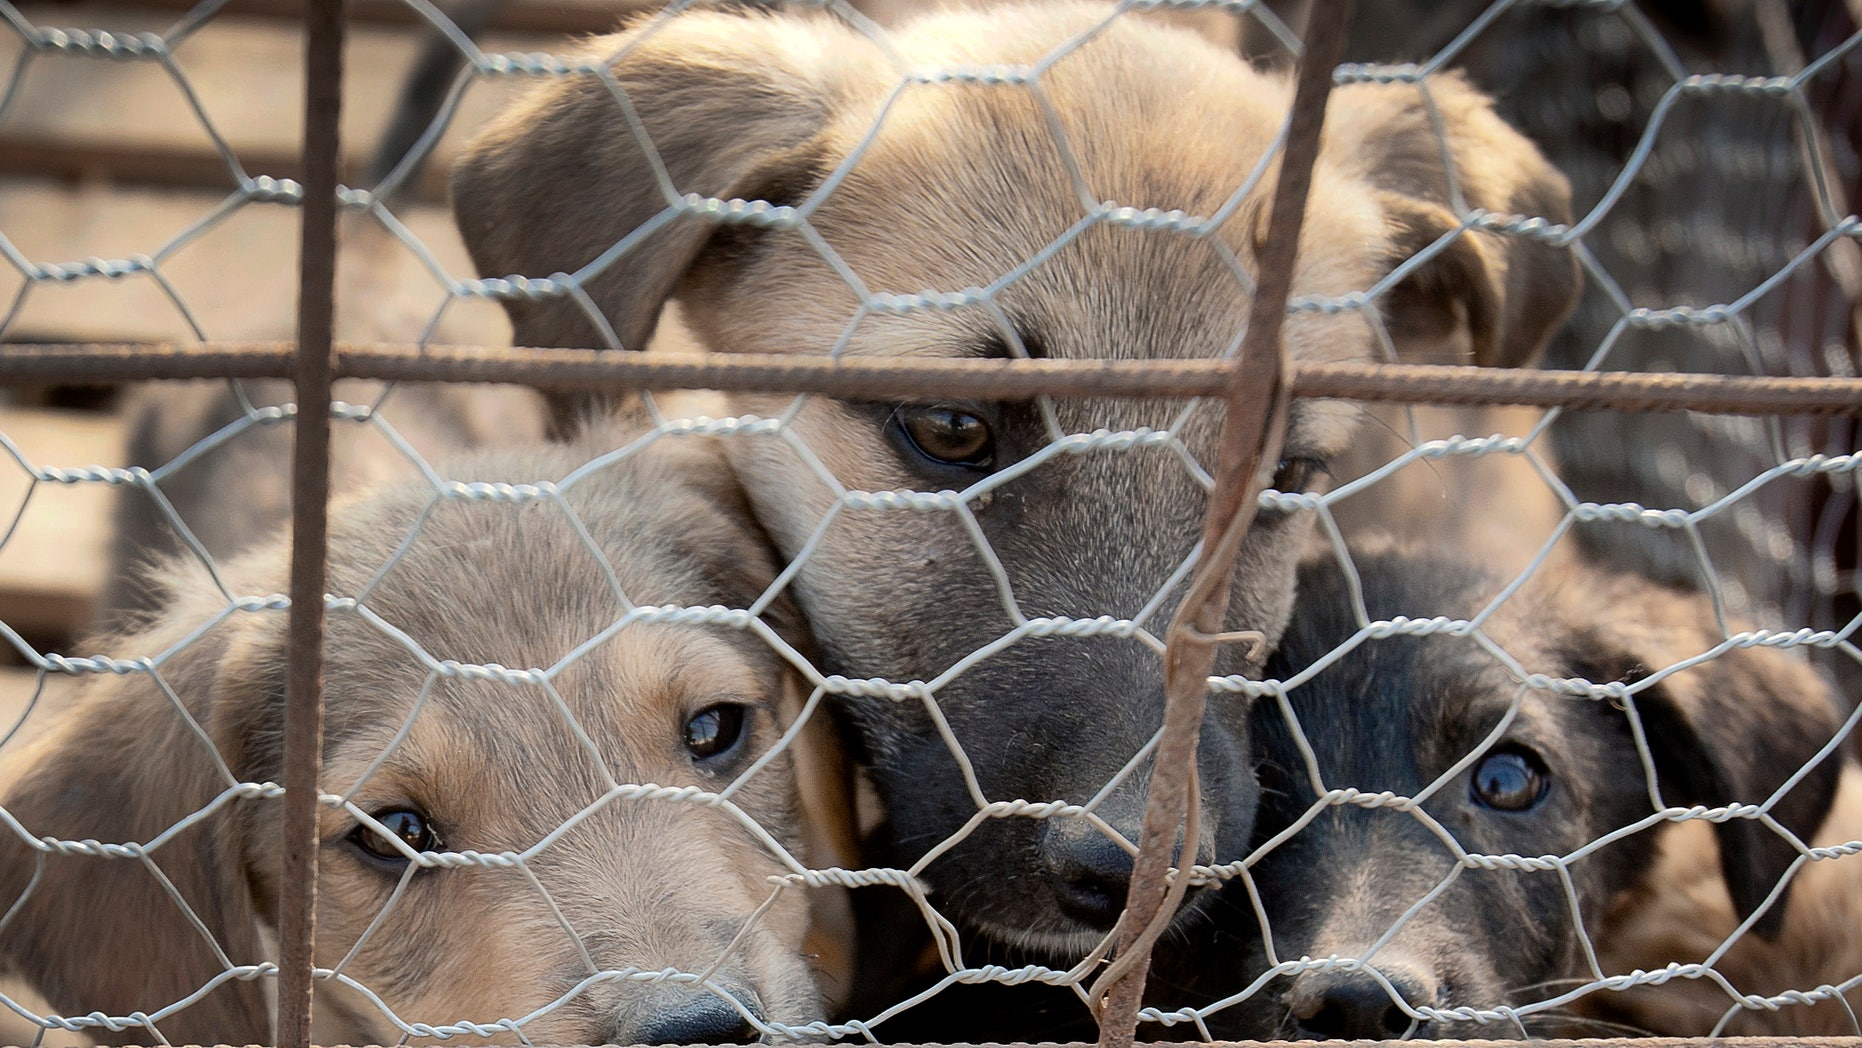 Sept. 26, 2011: Puppies look out from behind wire fencing in a stray dog shelter in Bucharest, Romania. Romania's parliament has voted to allow for thousands of stray dogs that roam the streets of the capital and elsewhere to be killed.